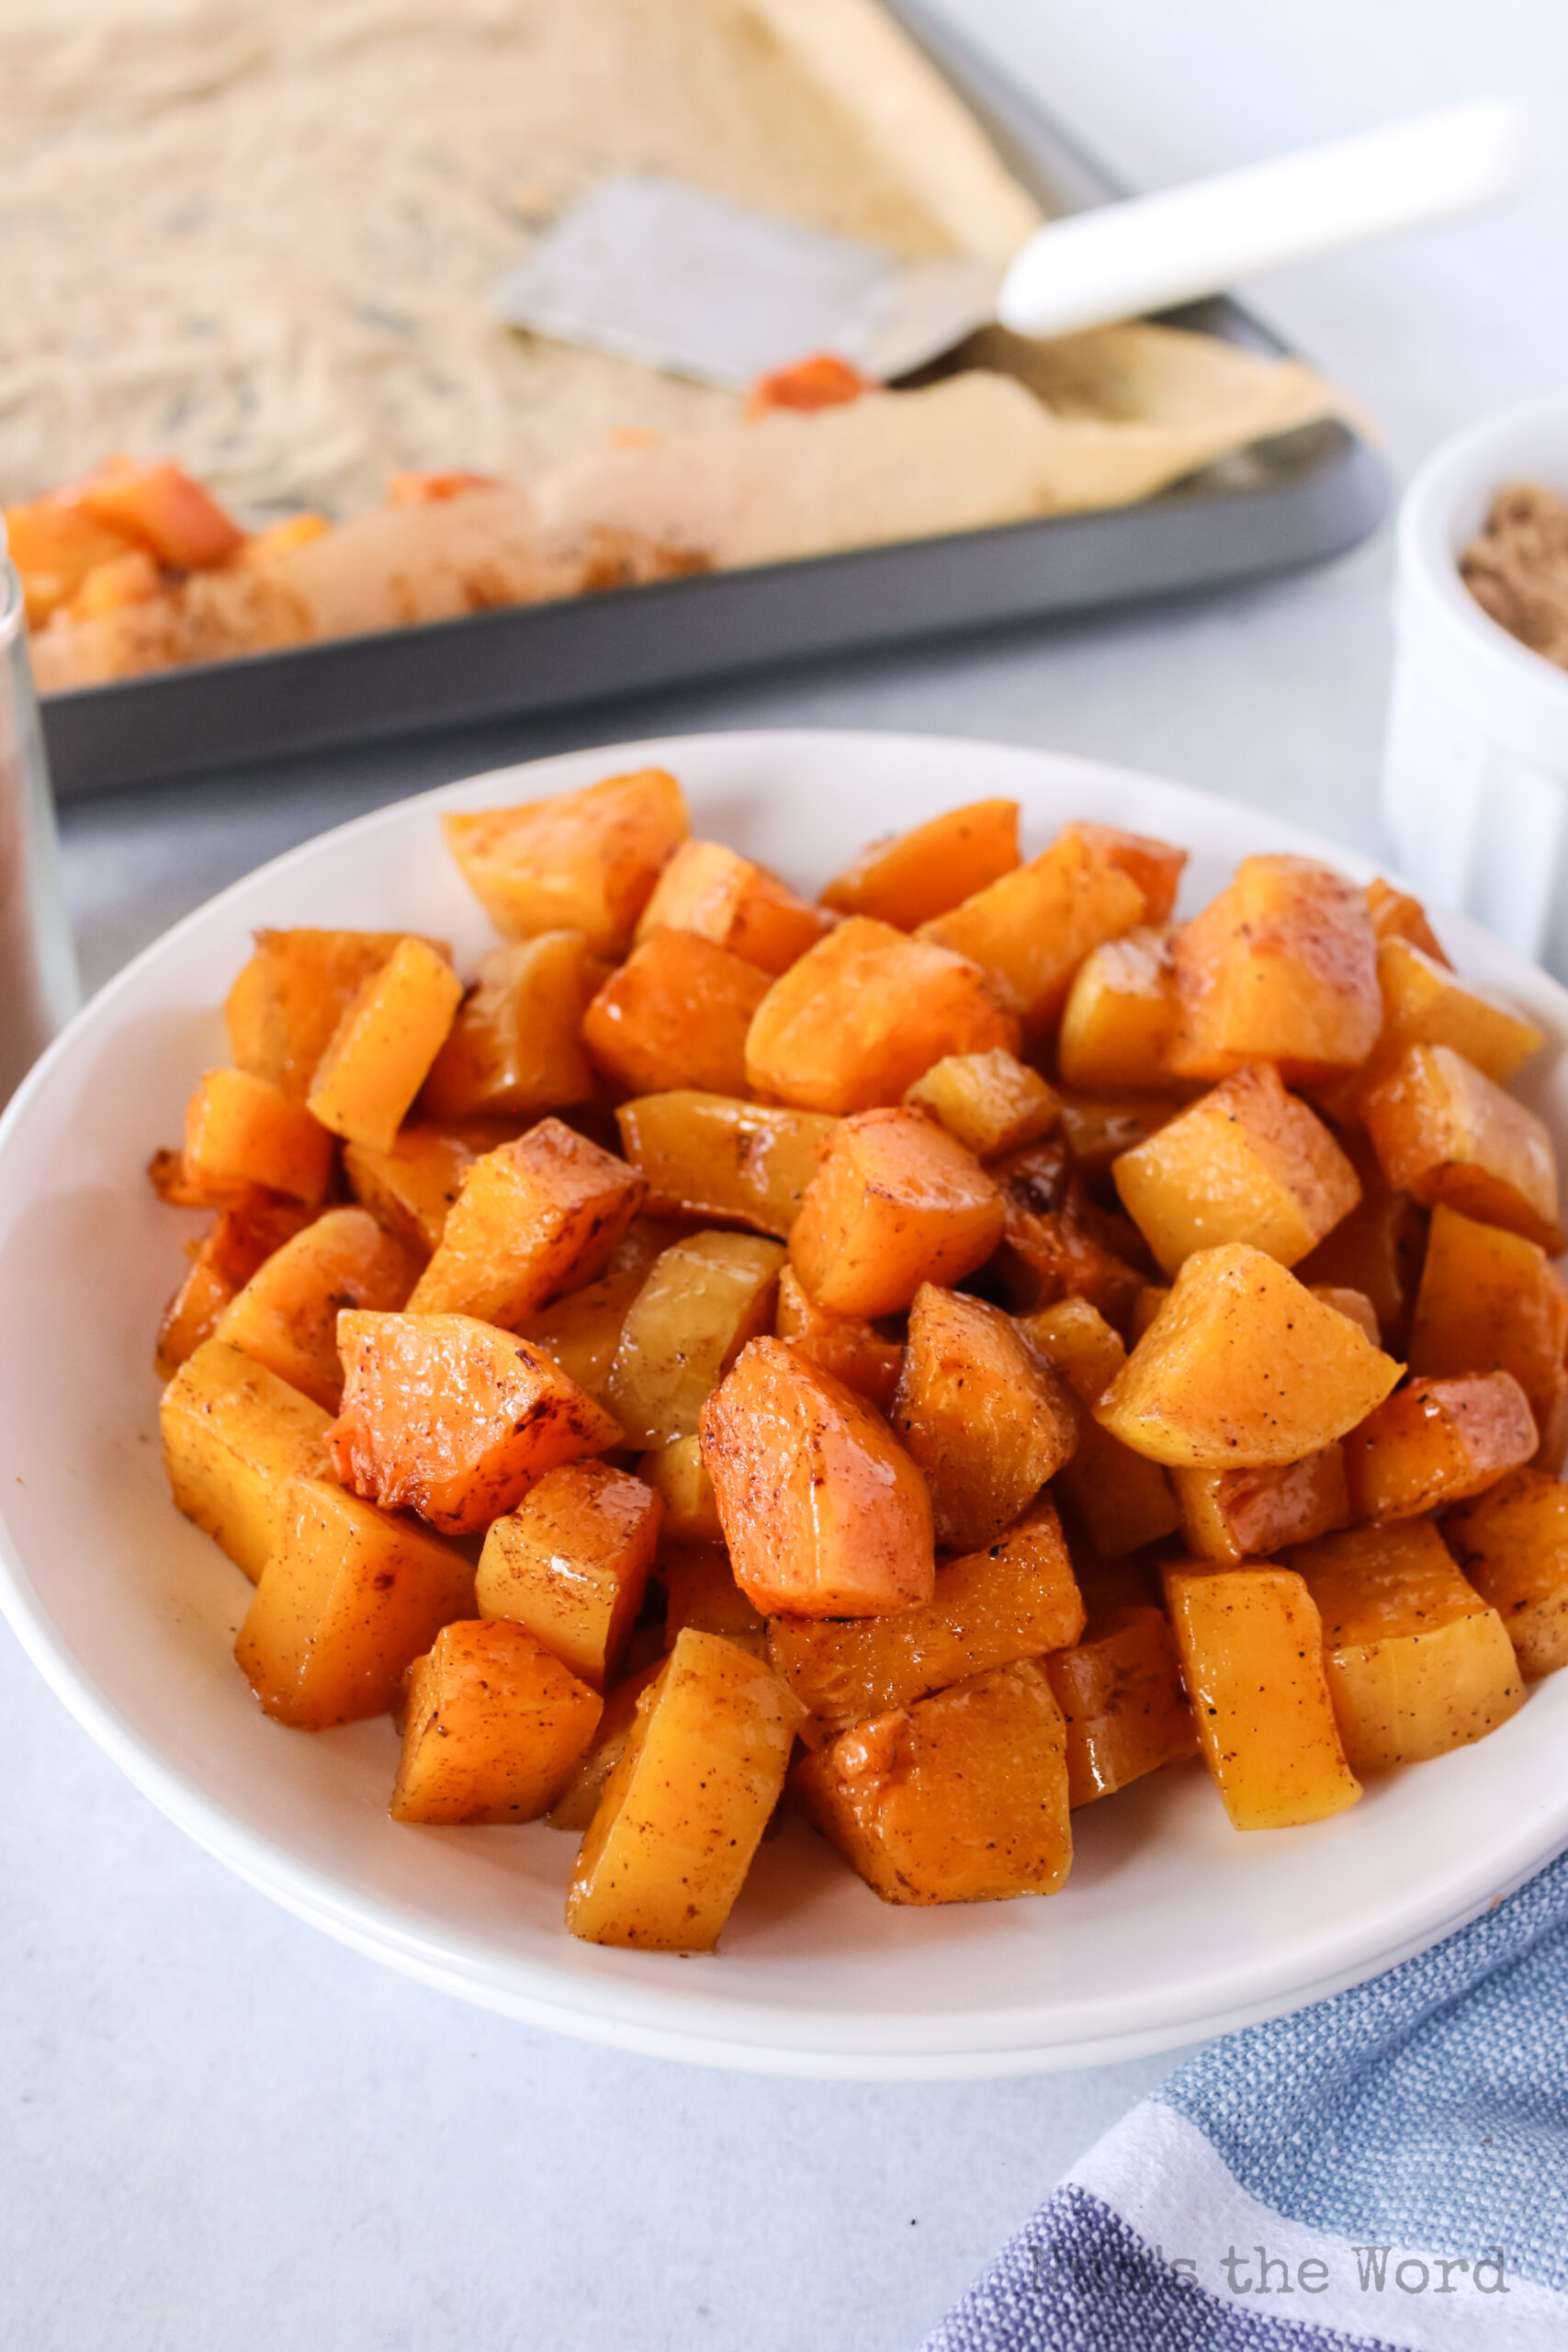 side angle of roasted squash in a bowl, ready to serve.